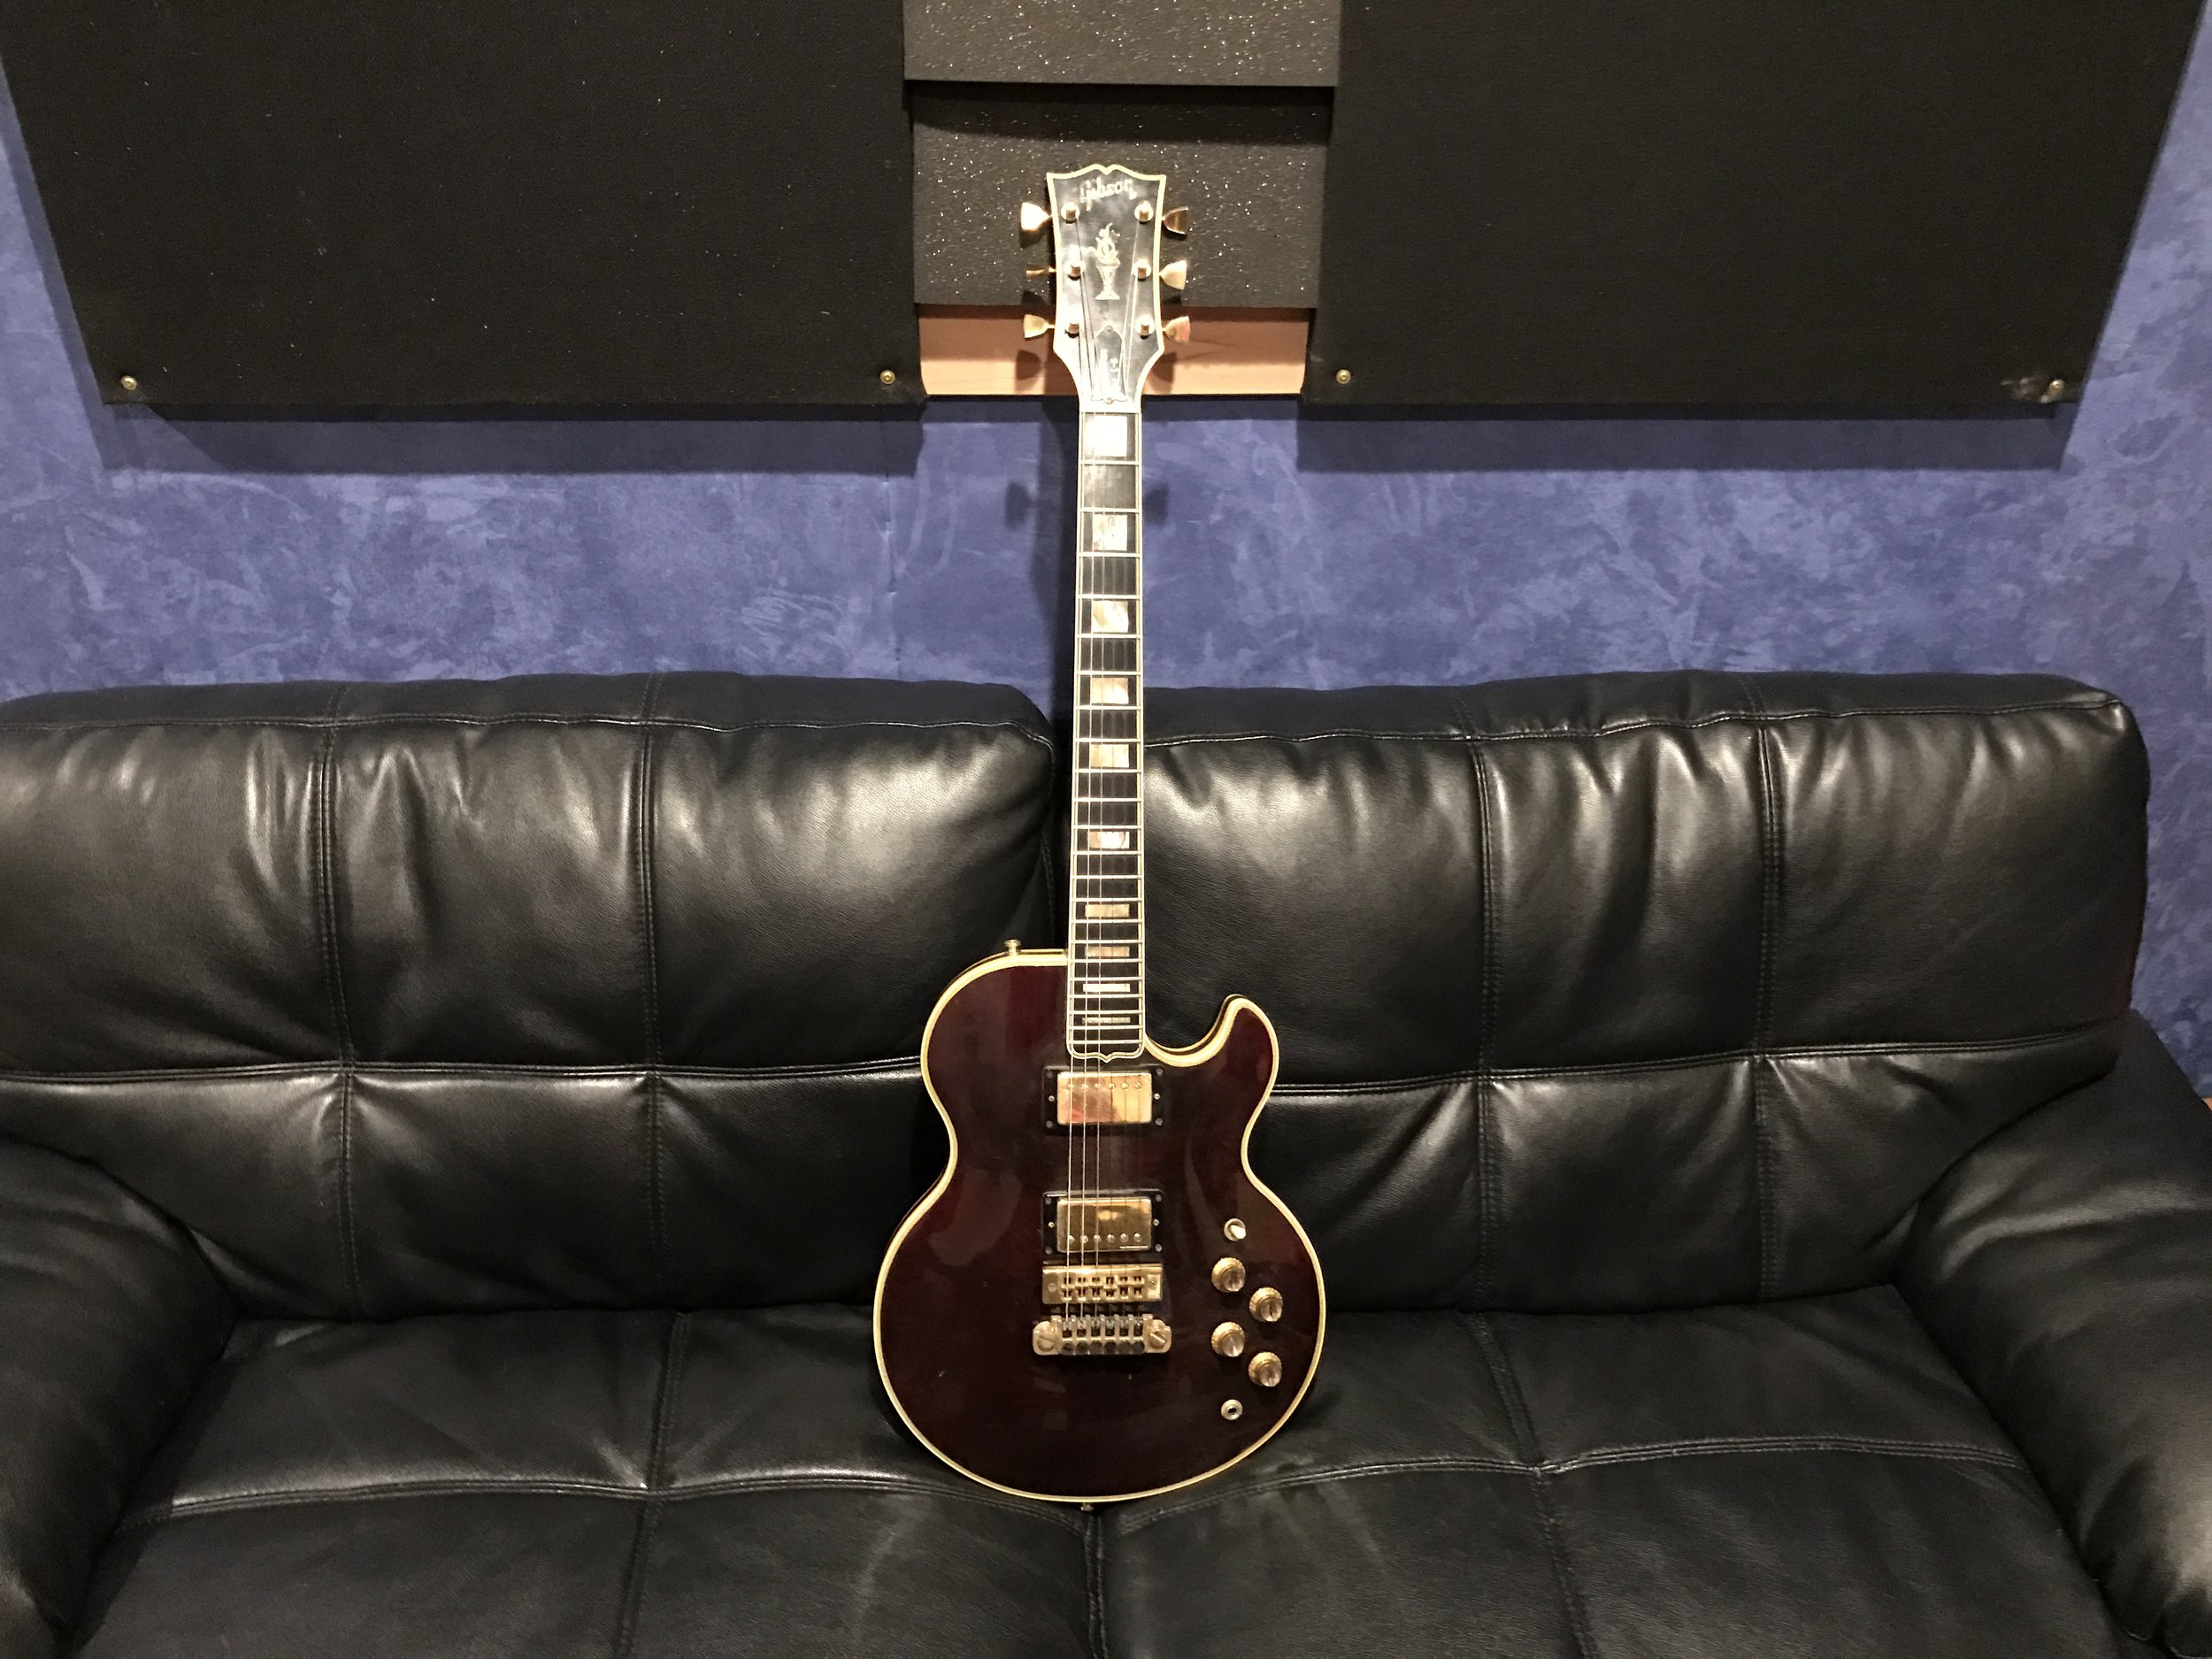 The Gibson L5s